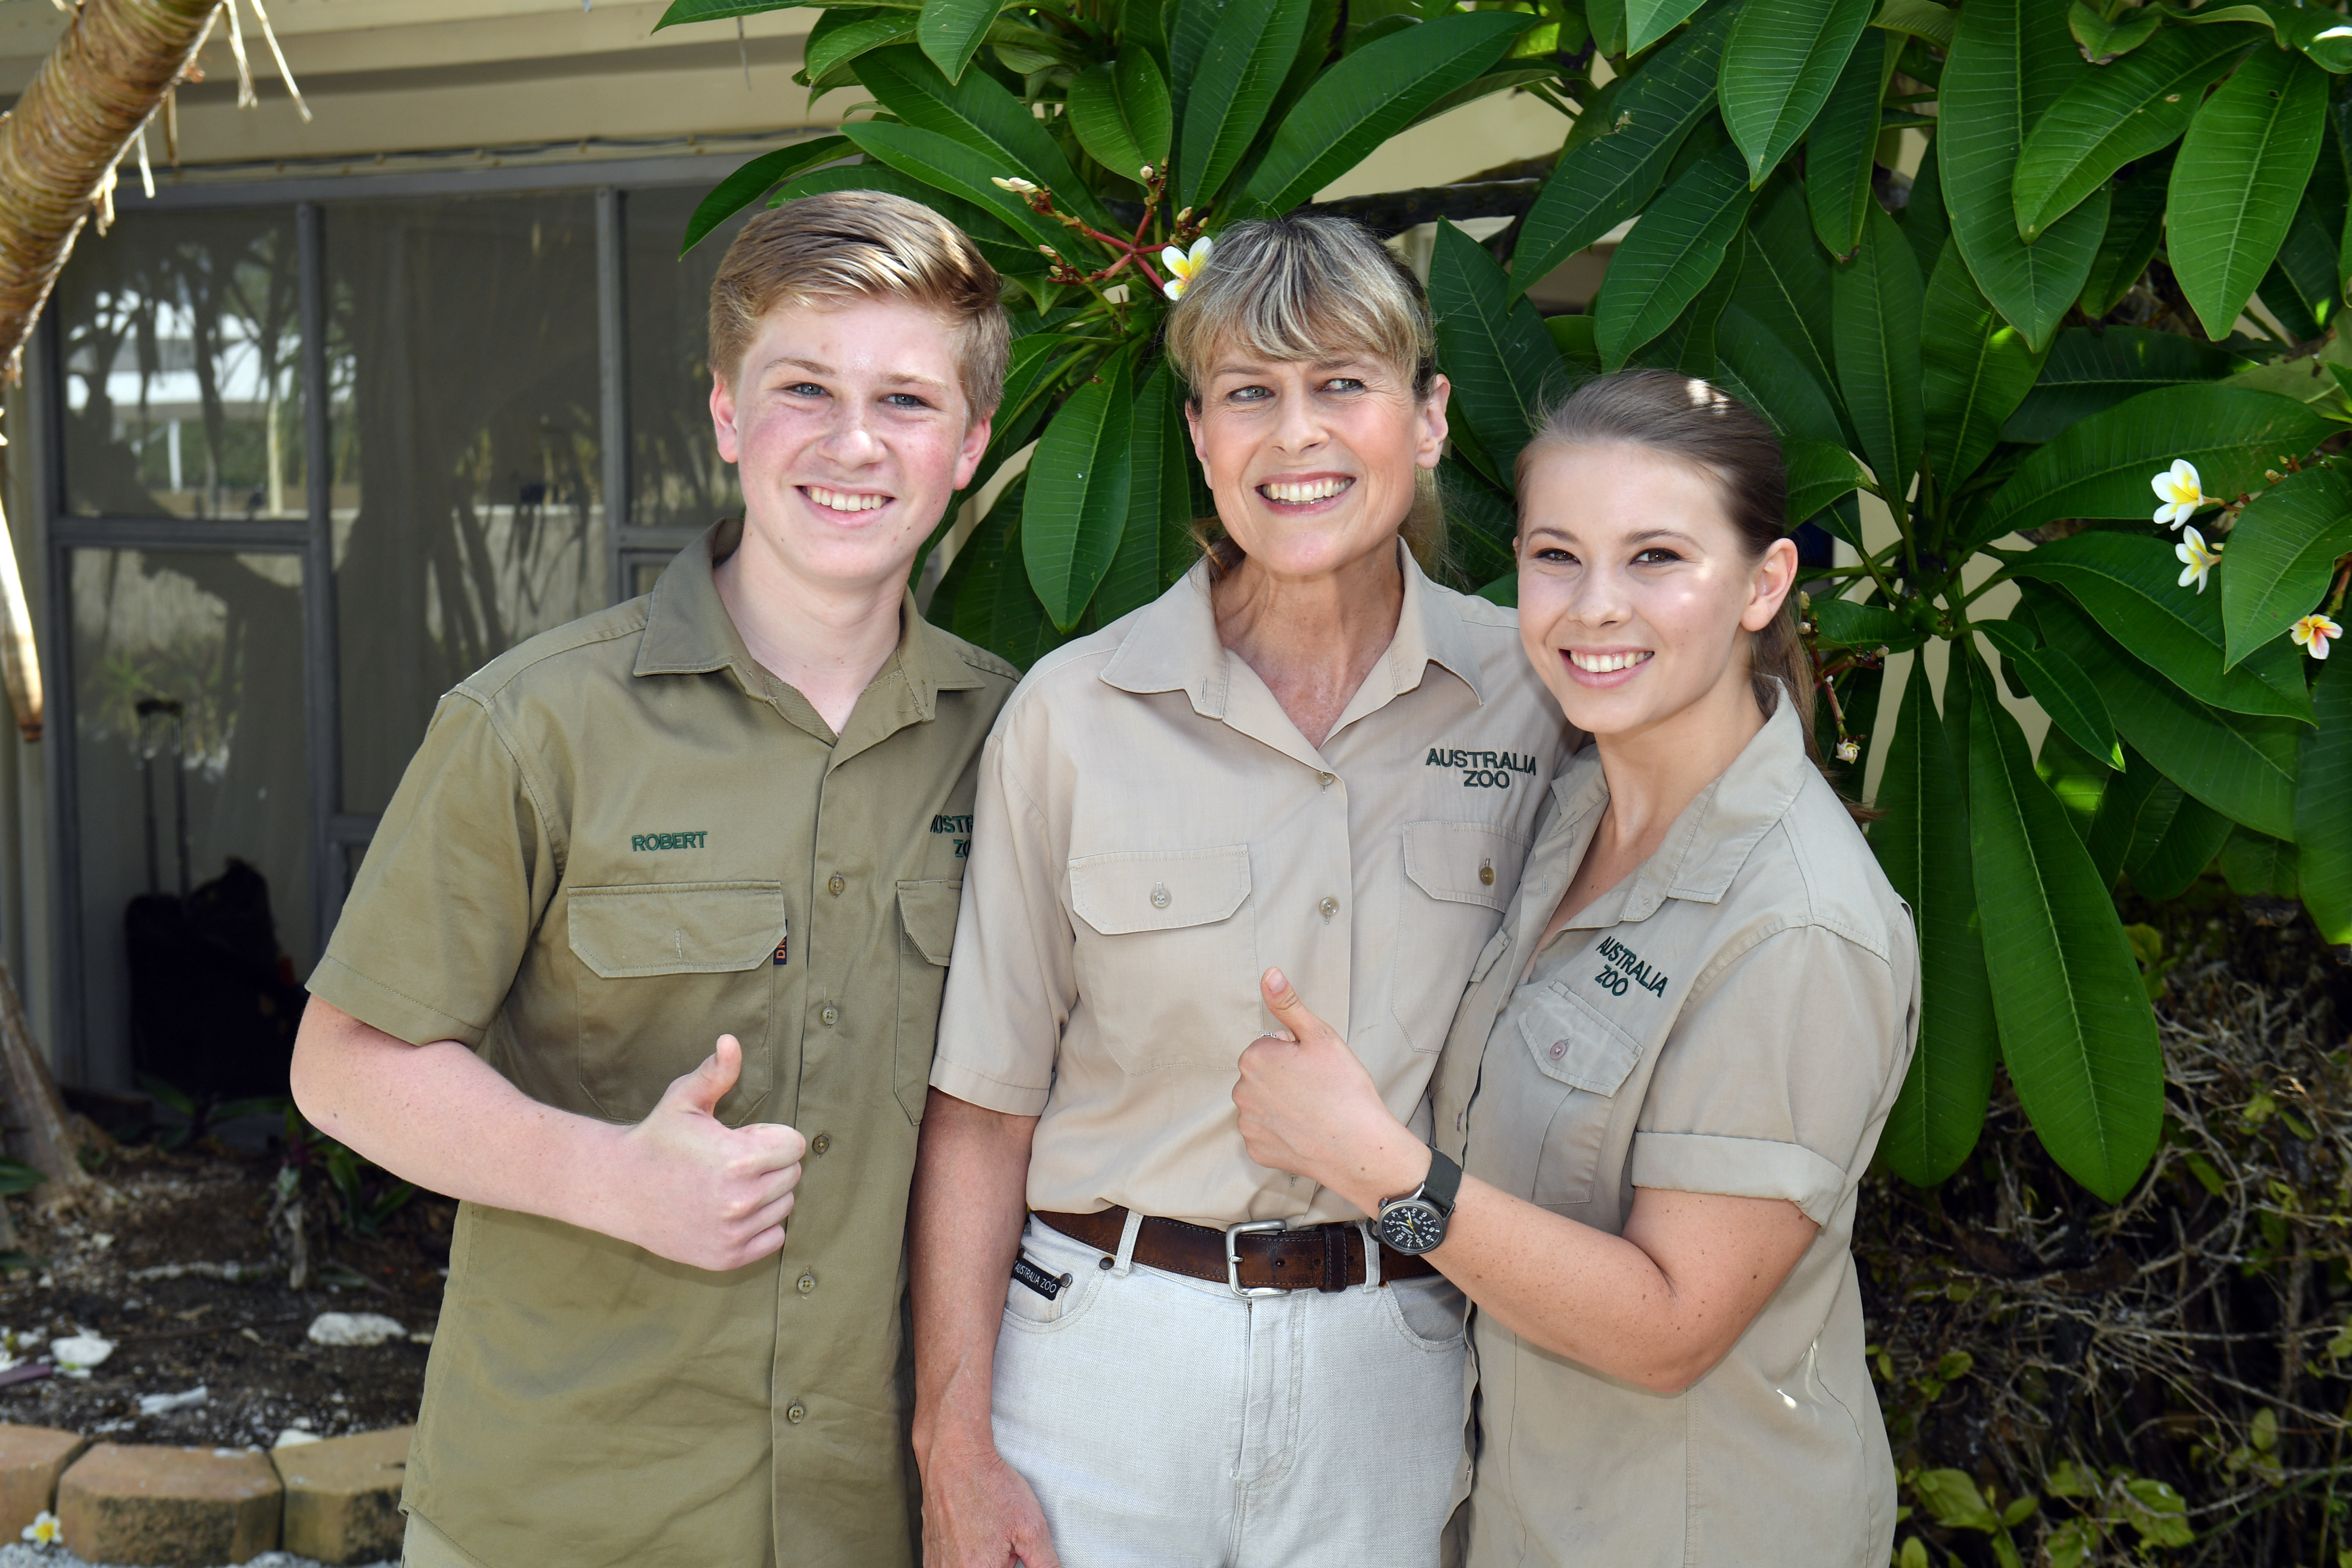 Robert Irwin, Terri Irwin and Bindi Irwin pose for a photo before a roundtable meeting discussing coral resilience on Lady Elliot Island in Queensland, Australia, on April 6, 2018.